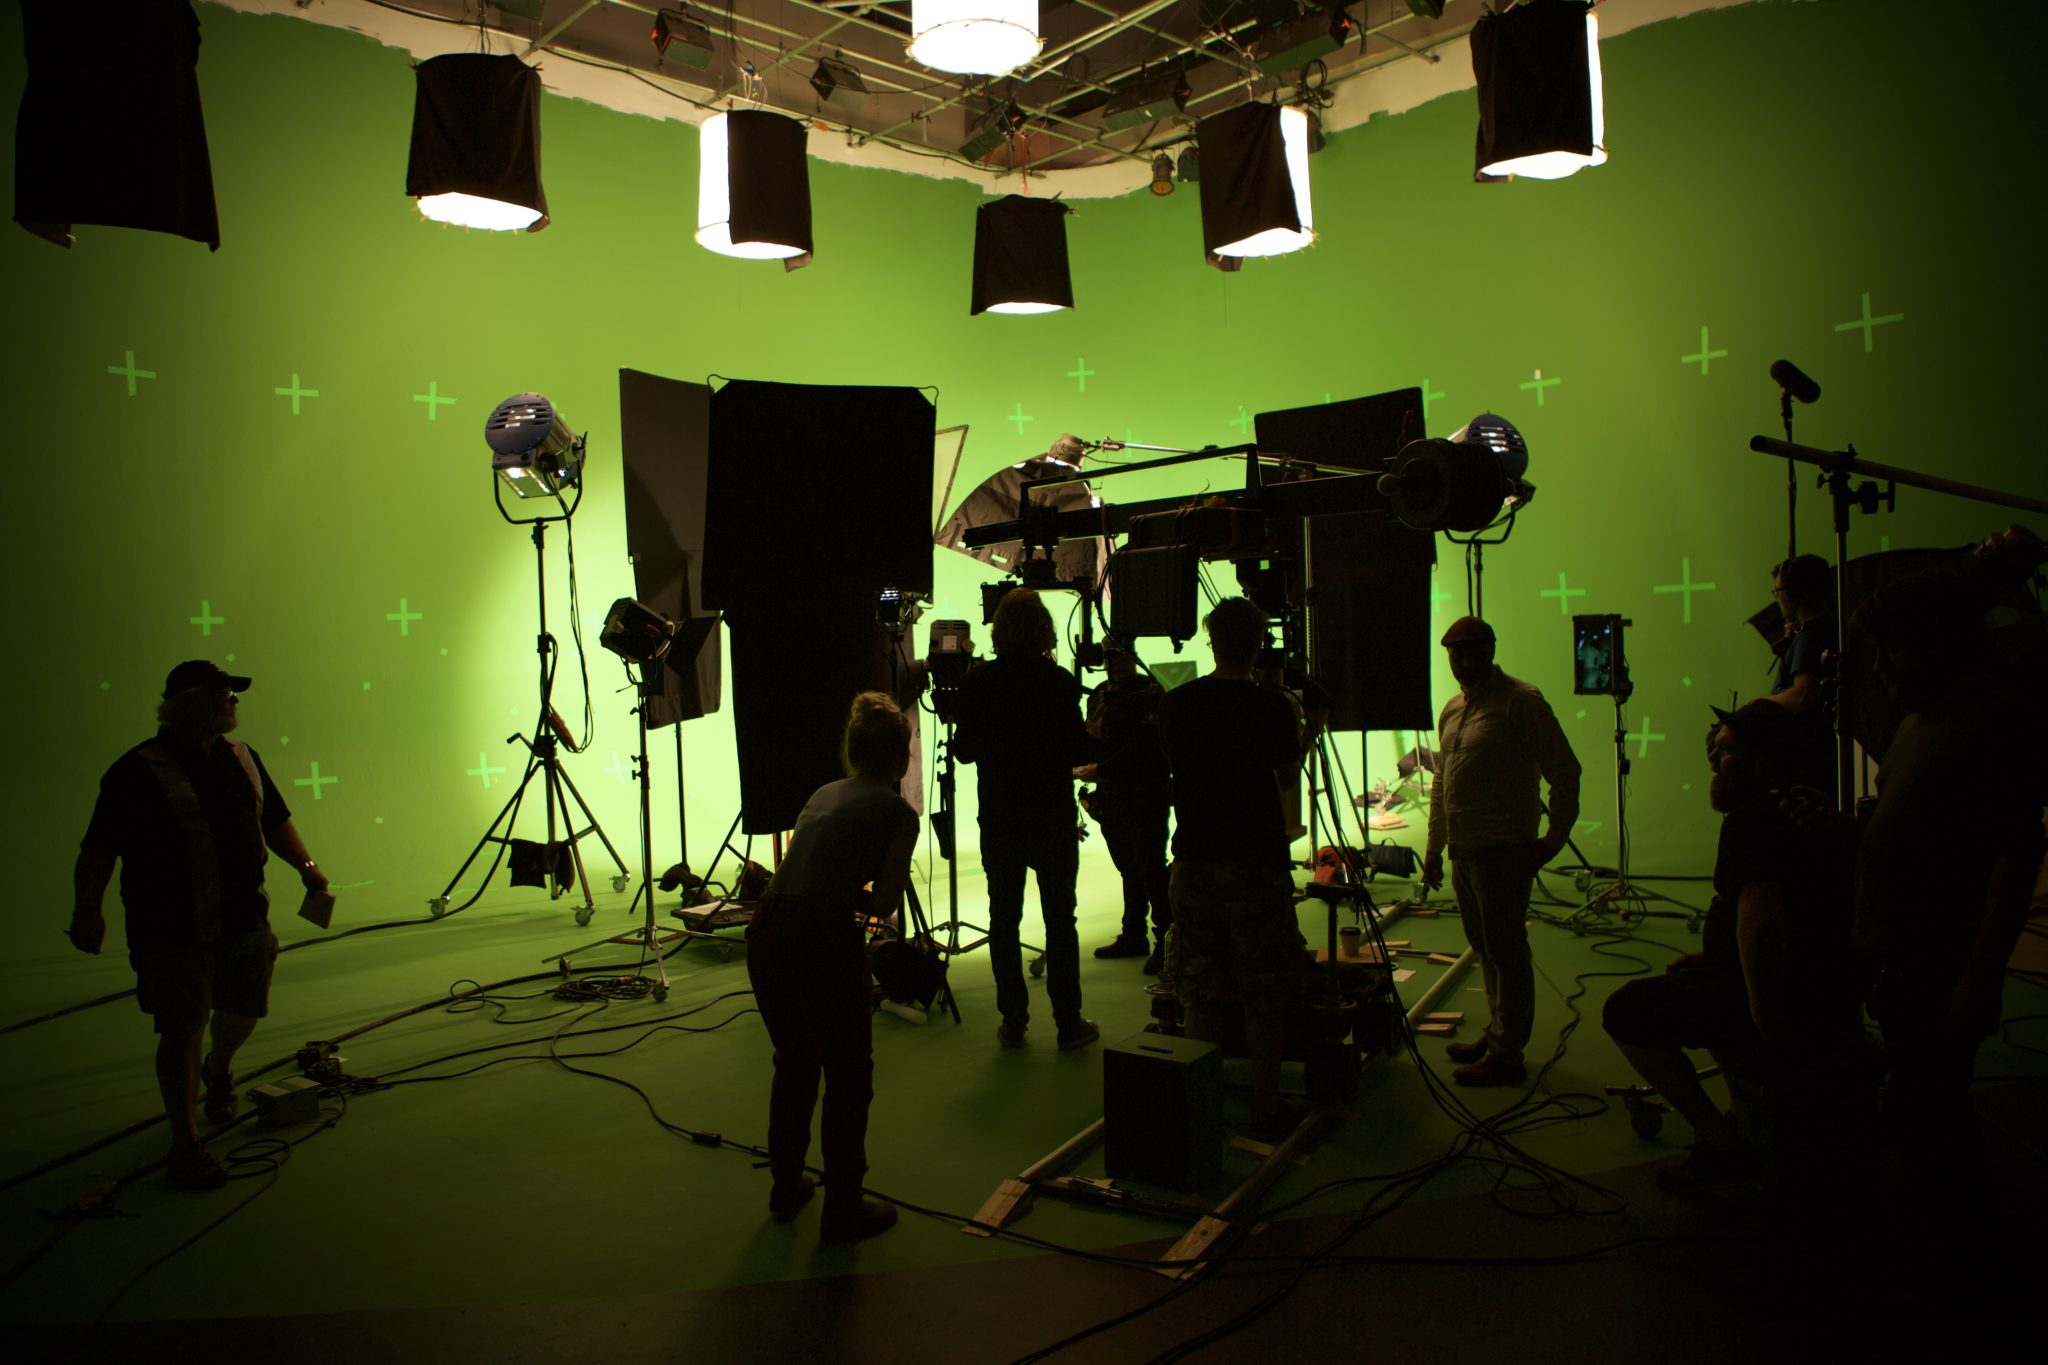 Shooting on a green screen set